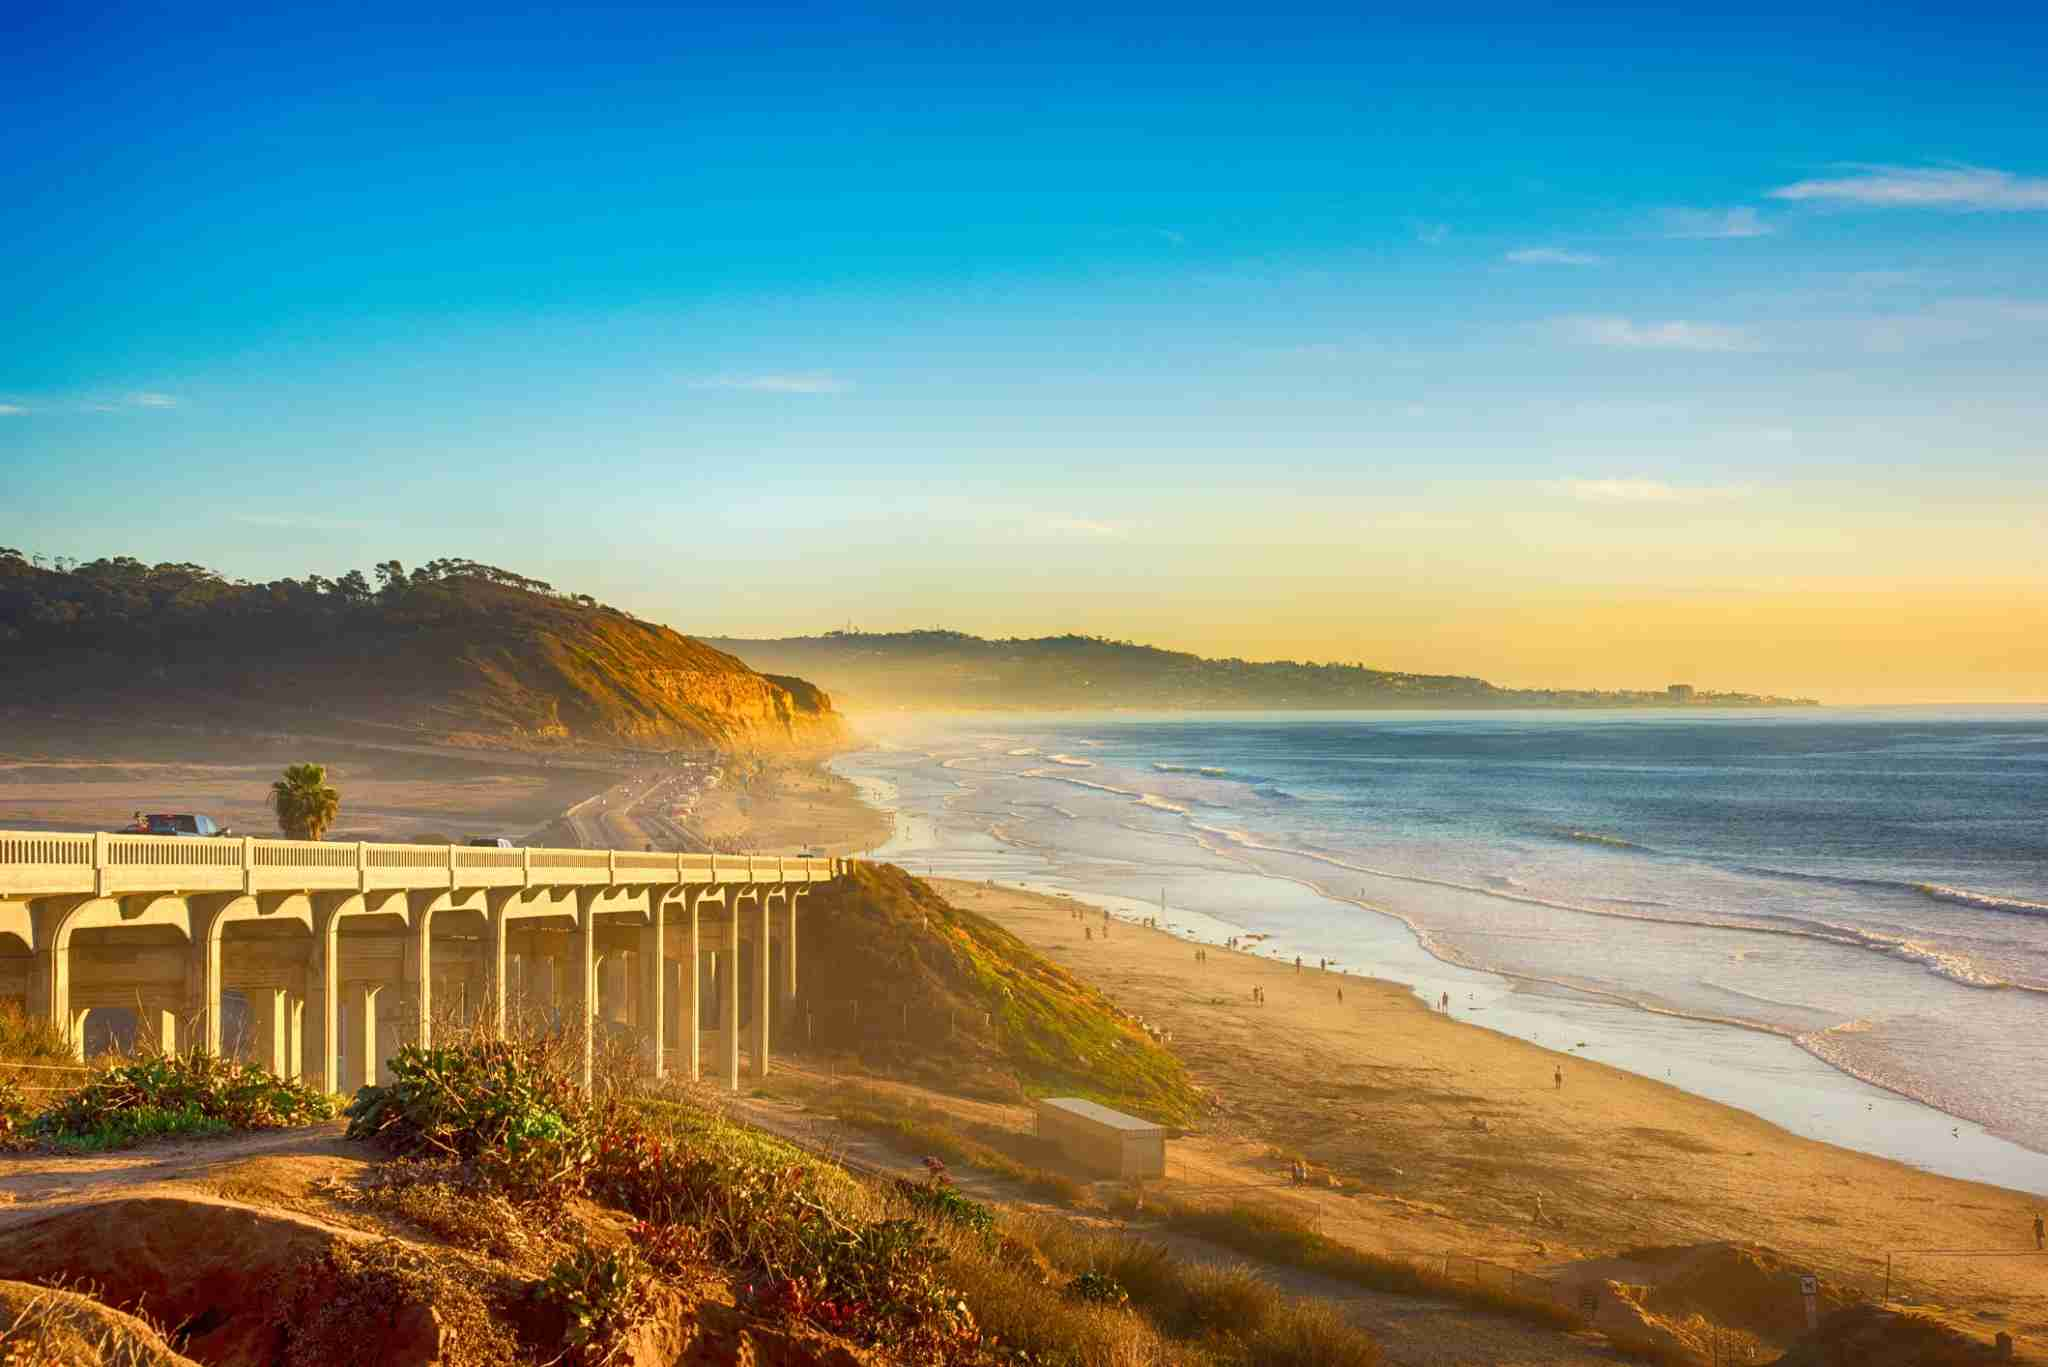 A bridge on the 101 along the beach in Del Mar, California, located just north of San Diego. (Art Wager / Getty Images)